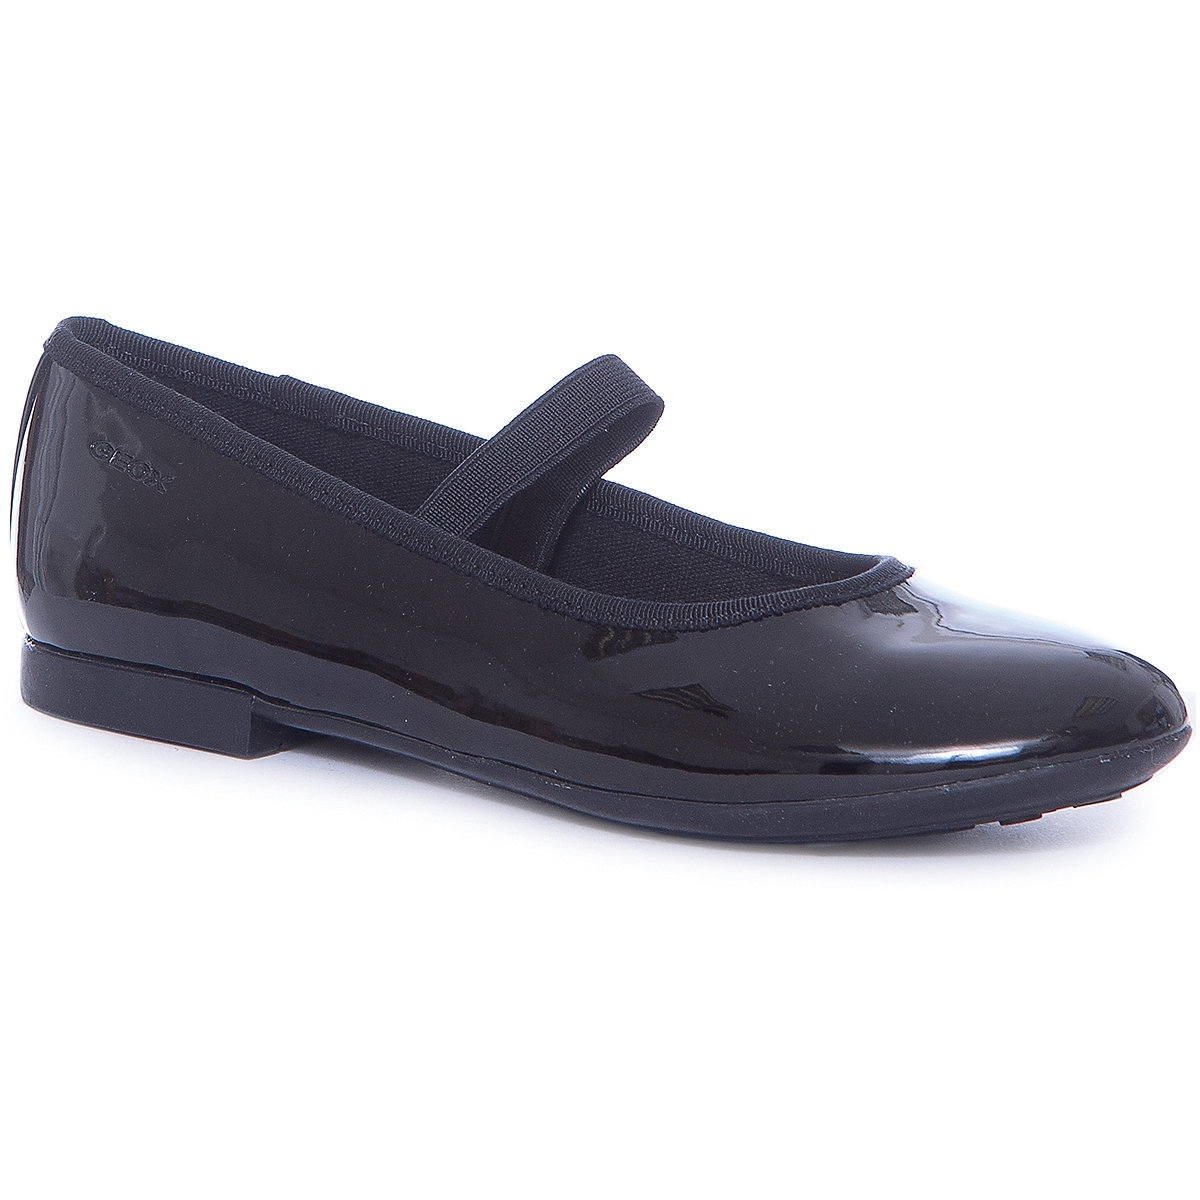 GEOX Leather Shoes 8786532 For girls girl children  Synthetic leather MTpromo